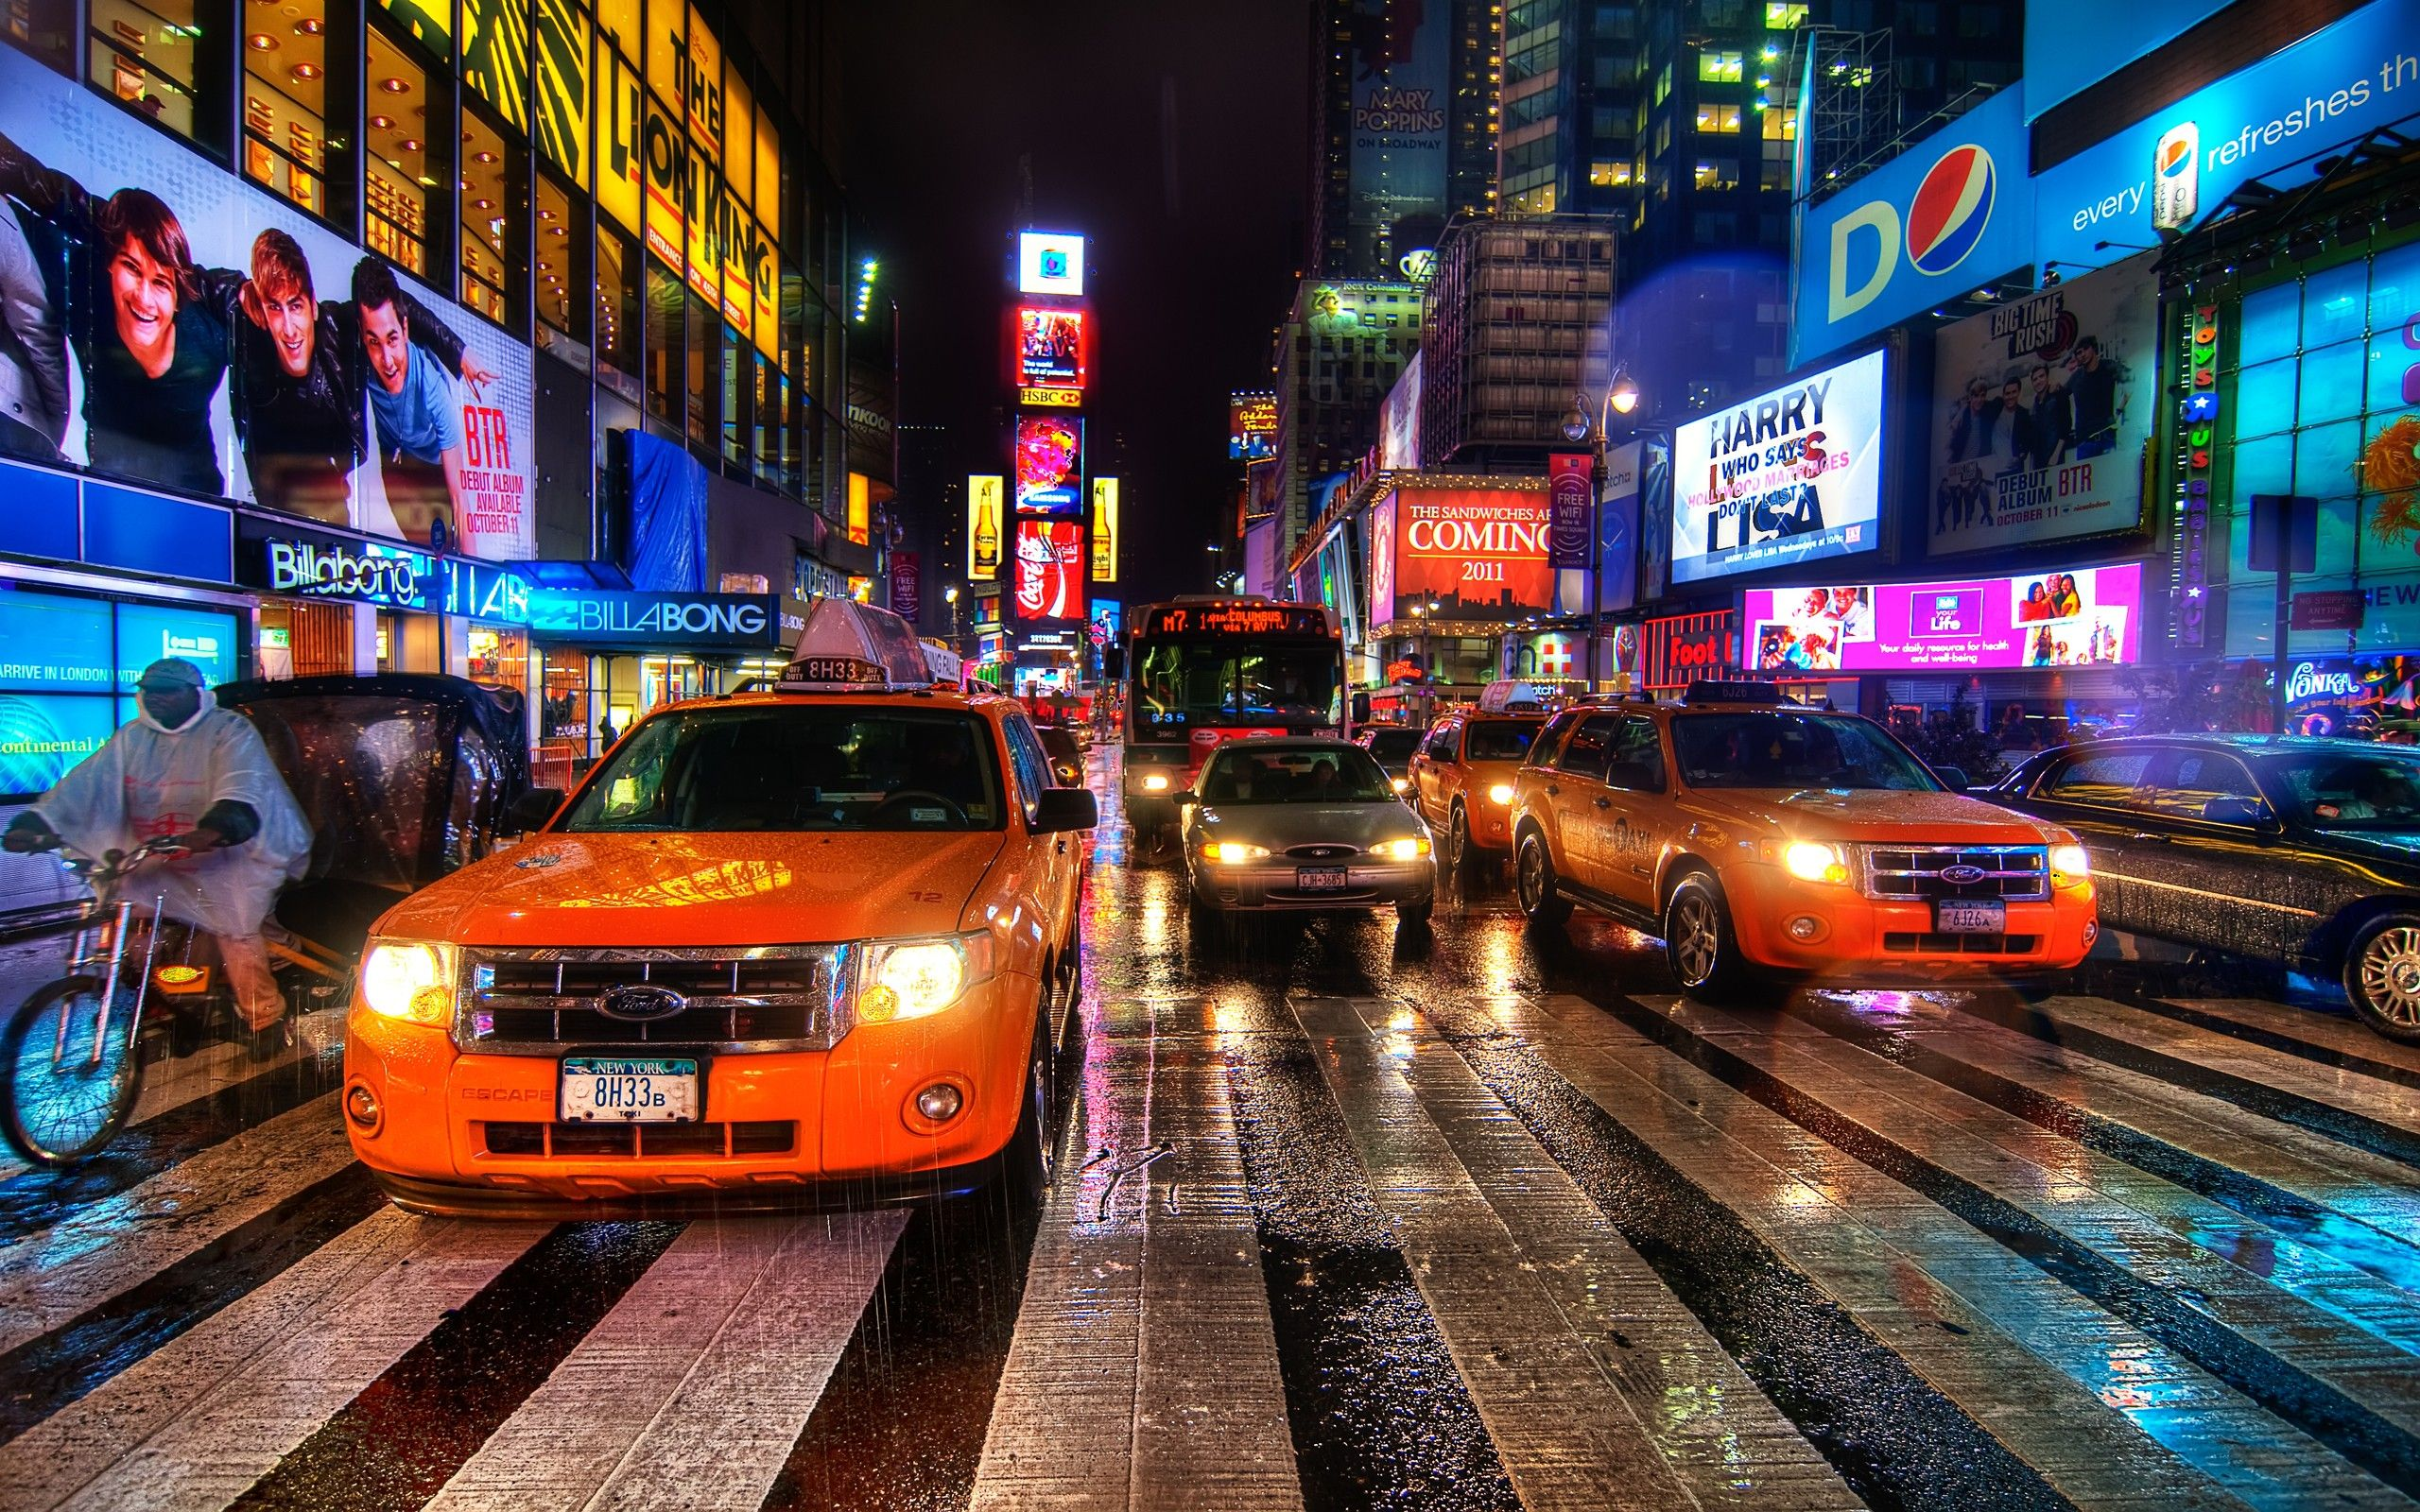 Cityscapes Streets Traffic New York City Times Square Ny Hd Wallpapers: Hd New York City Wallpaper [2560x1600PX] | Meripuisto